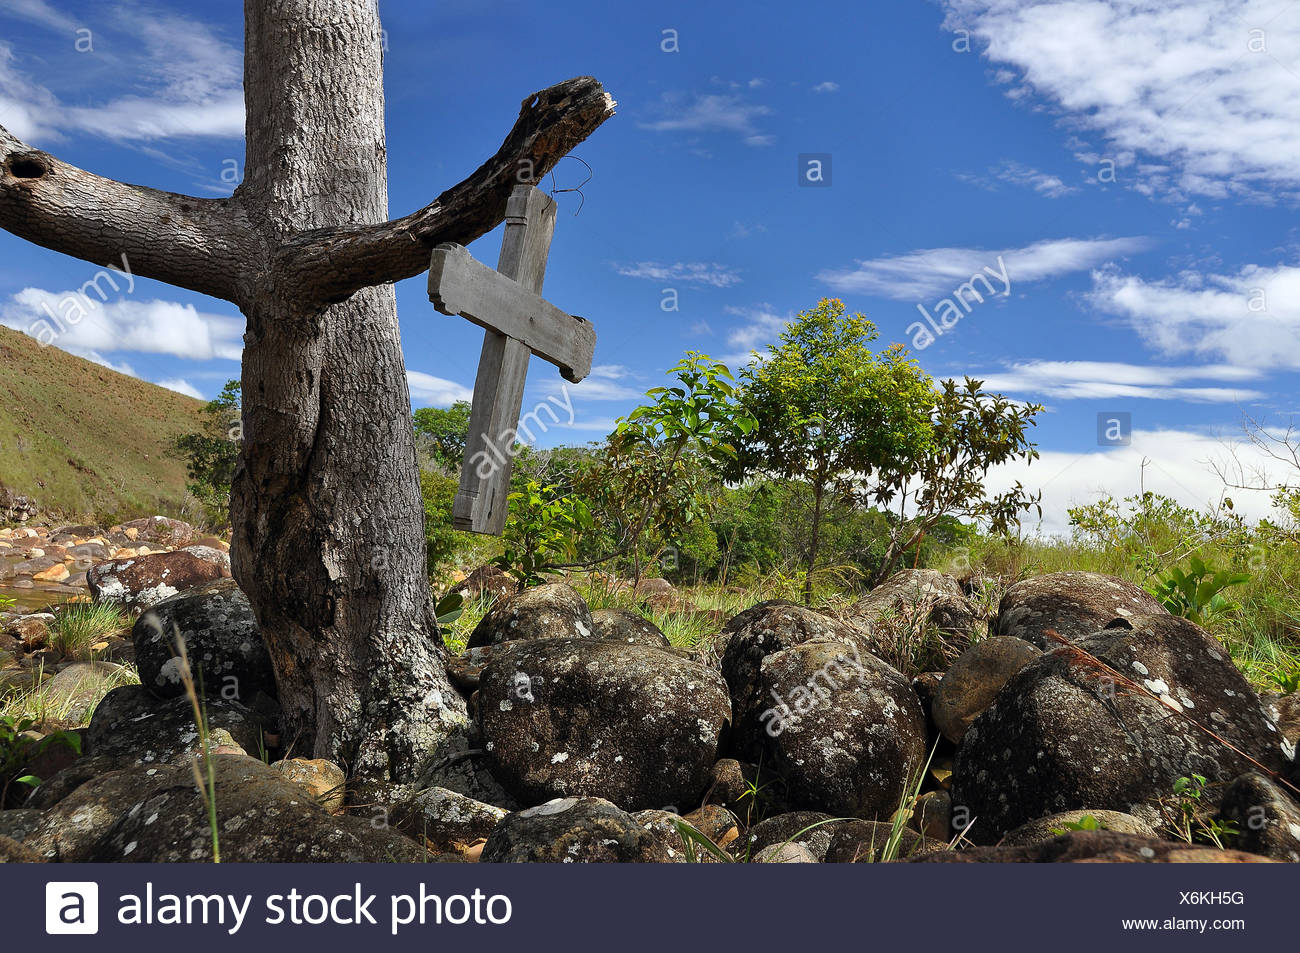 Wooden cross on a tree in the wilderness, trek to the Roraima table mountain, highest mountain of Brazil - Stock Image